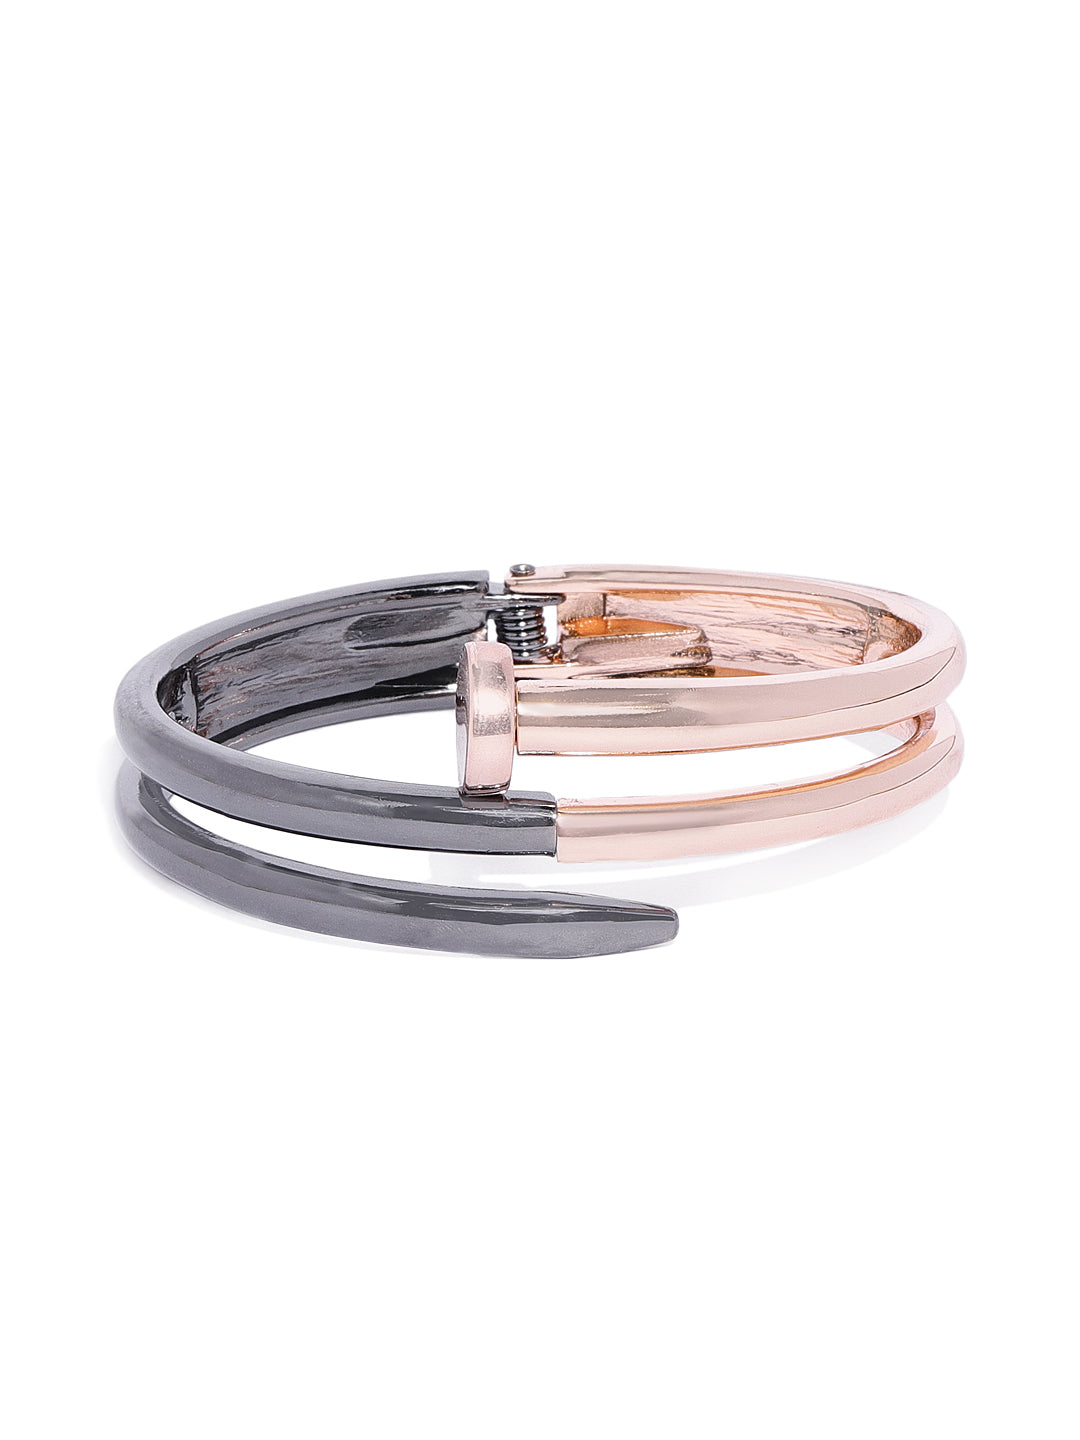 Nail Cuff in Rose Gold and Black - ChicMela